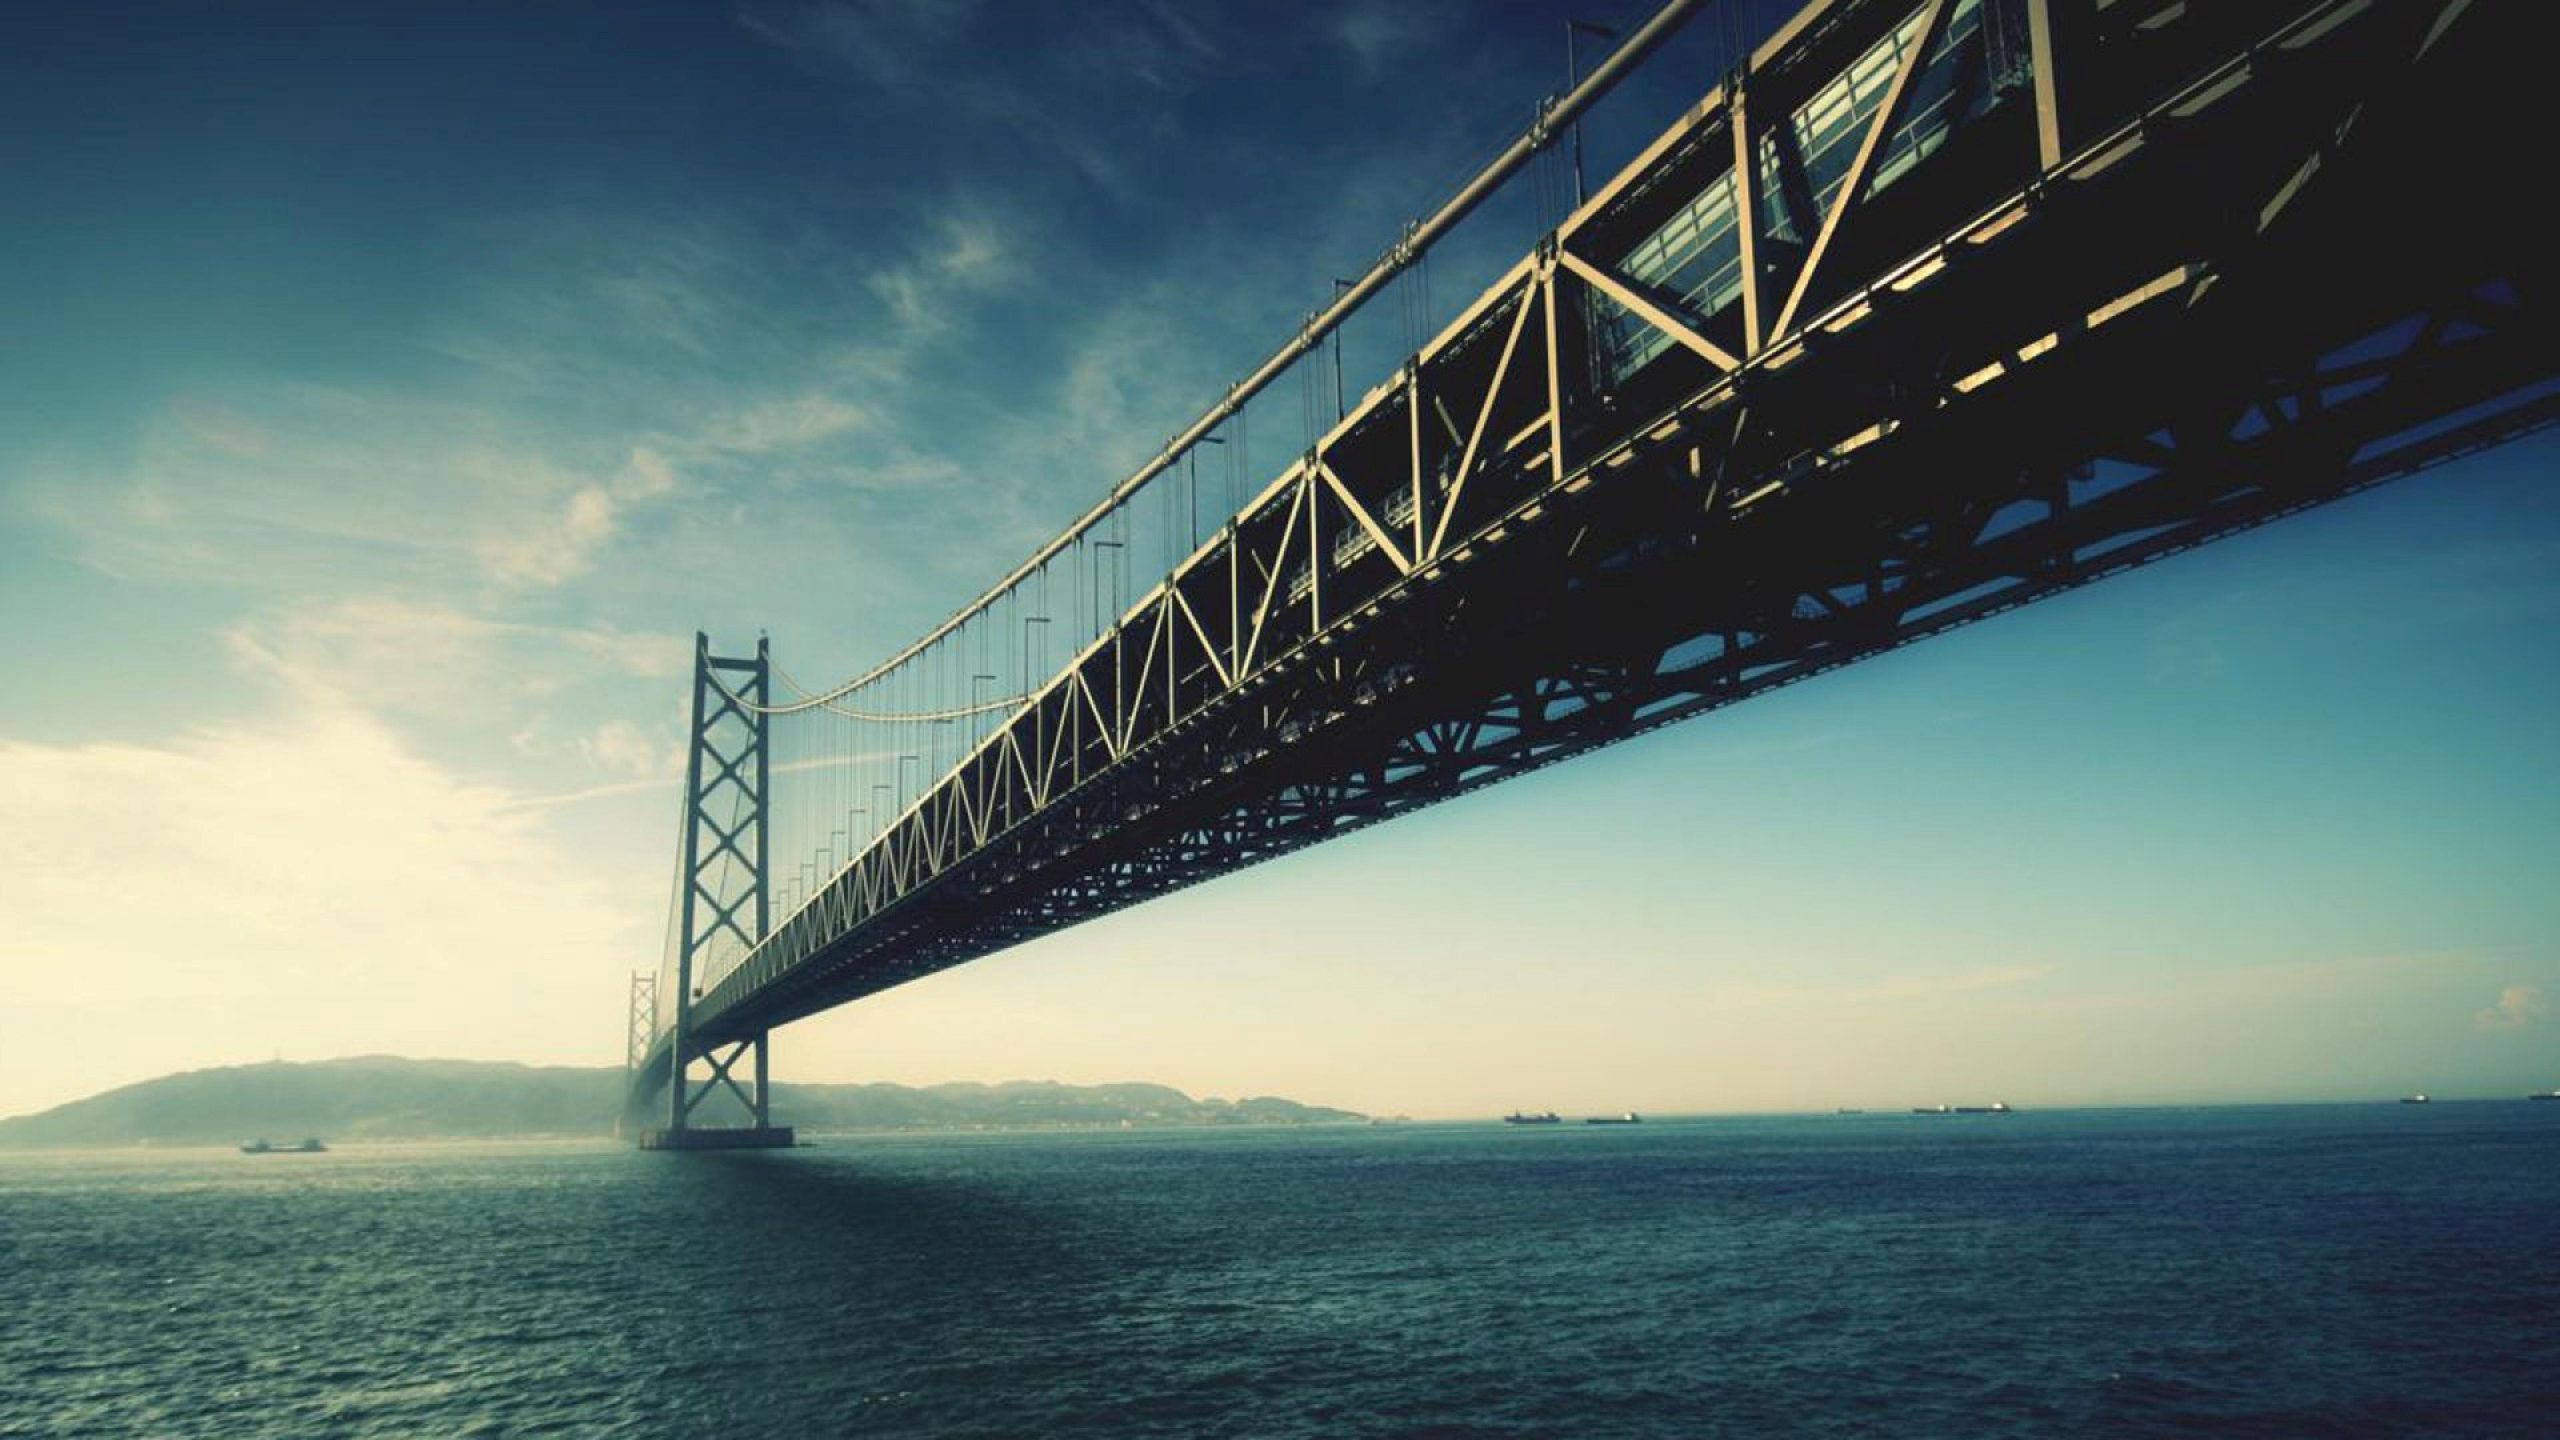 free bridge images